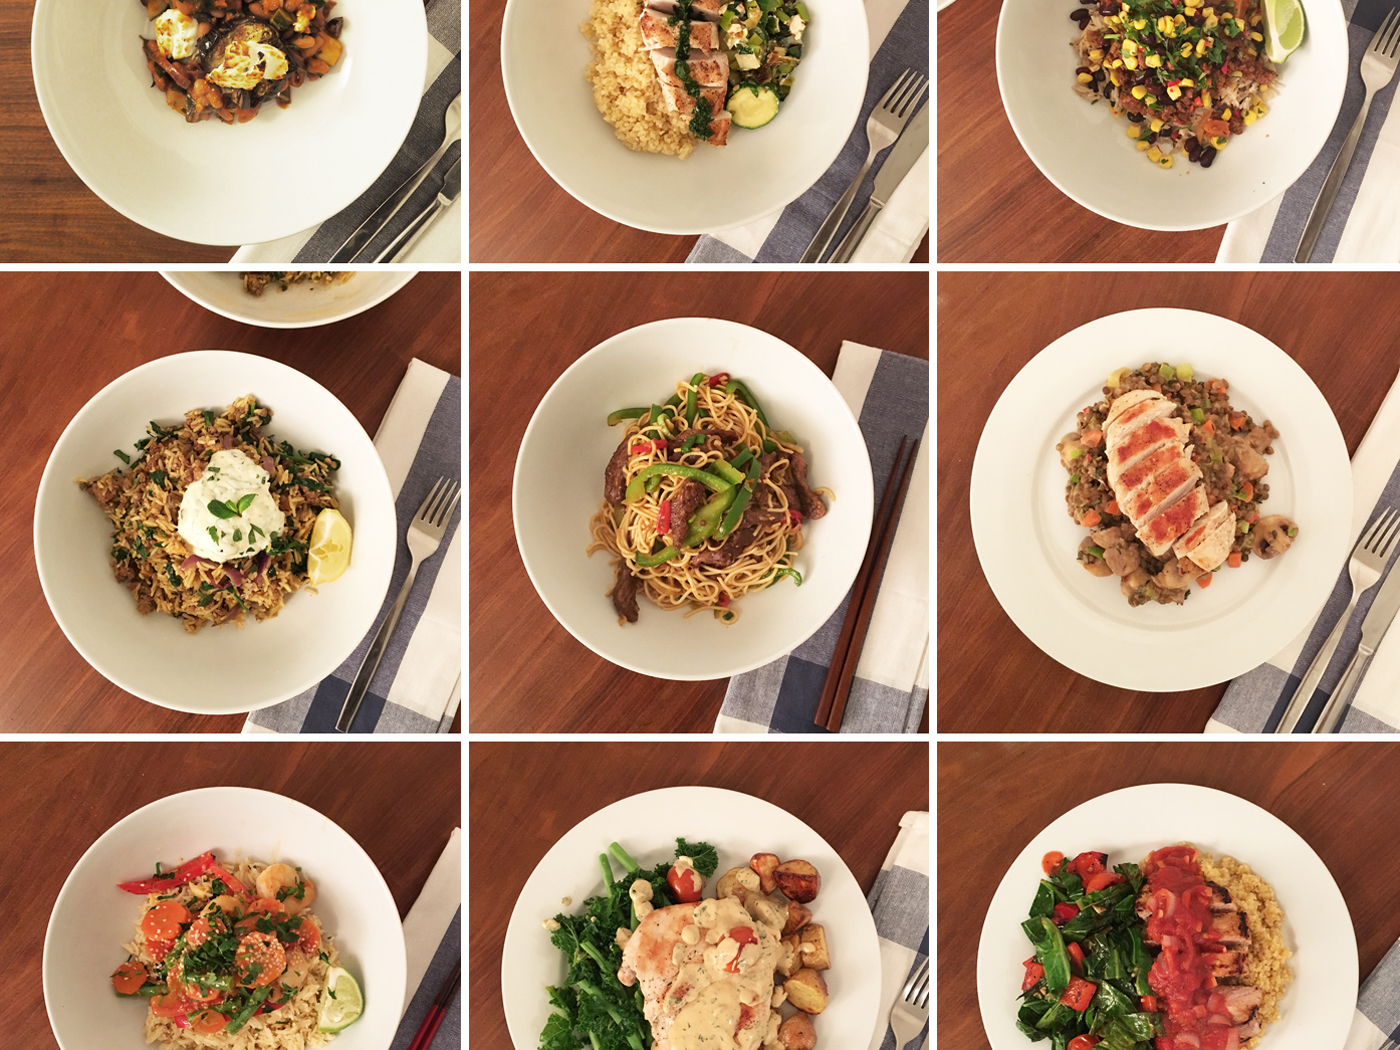 Free Hellofresh Meal Kit Delivery Service